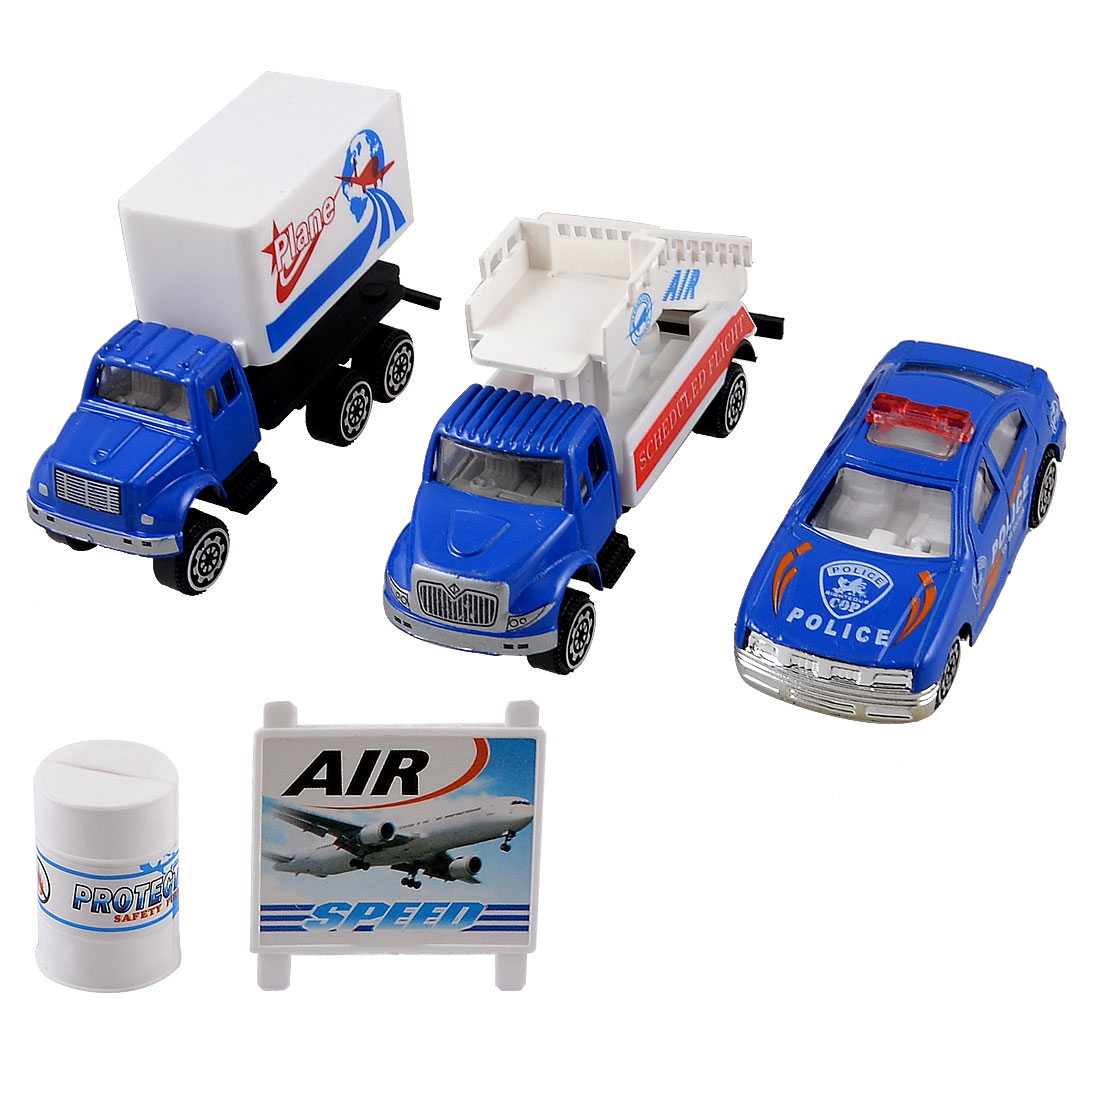 Set 5 in 1 Blue White Plastic Fuel Barrel Model Police Car Truck Toy for Children